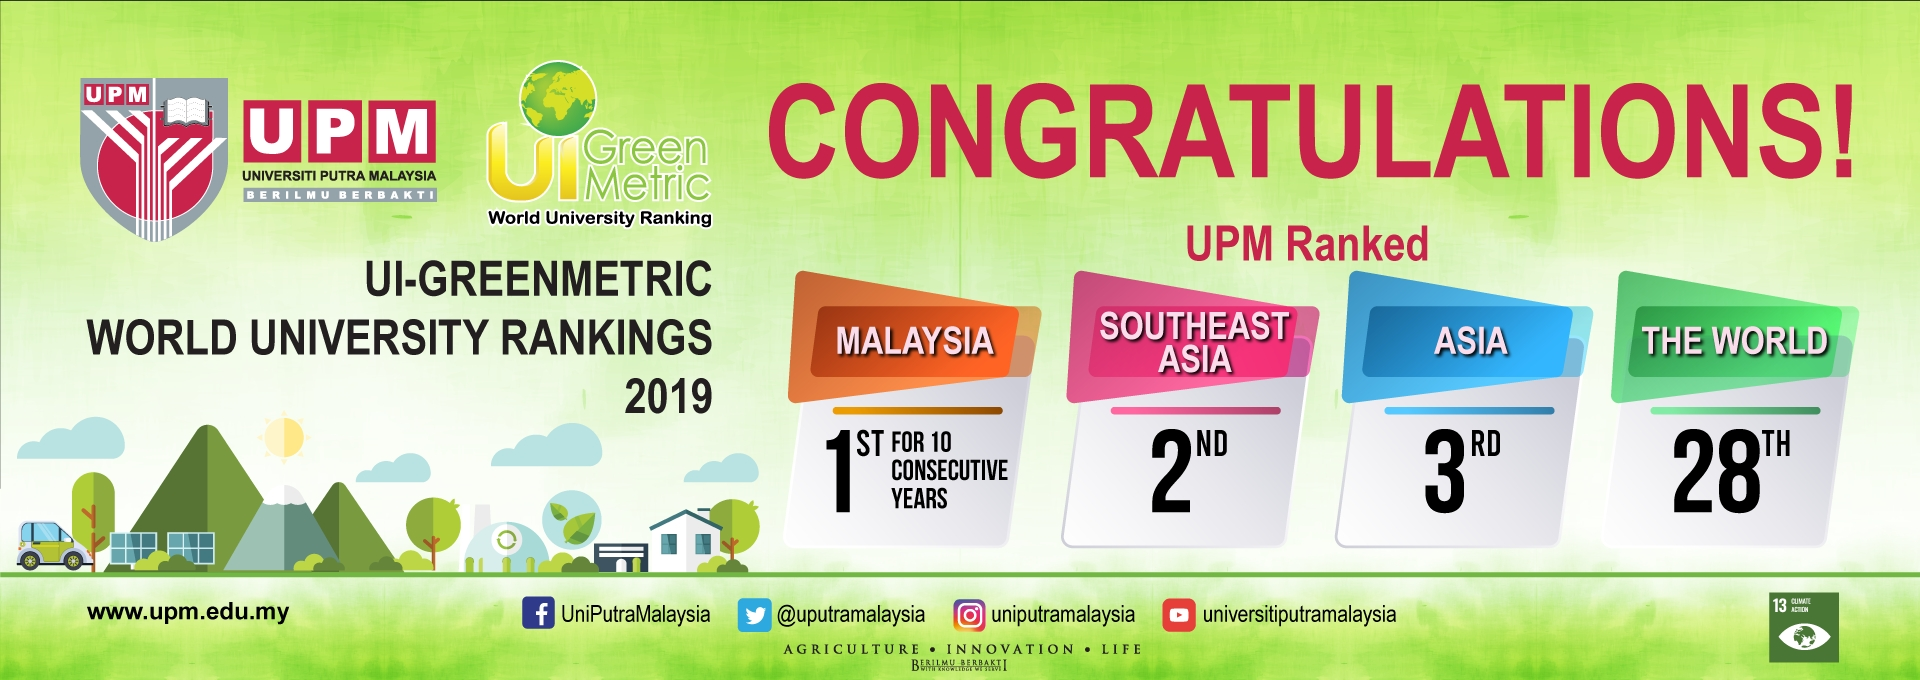 UI-GREENMETRIC WORLD UNIVERSITY RANKING 2019 ACHIEVEMENT